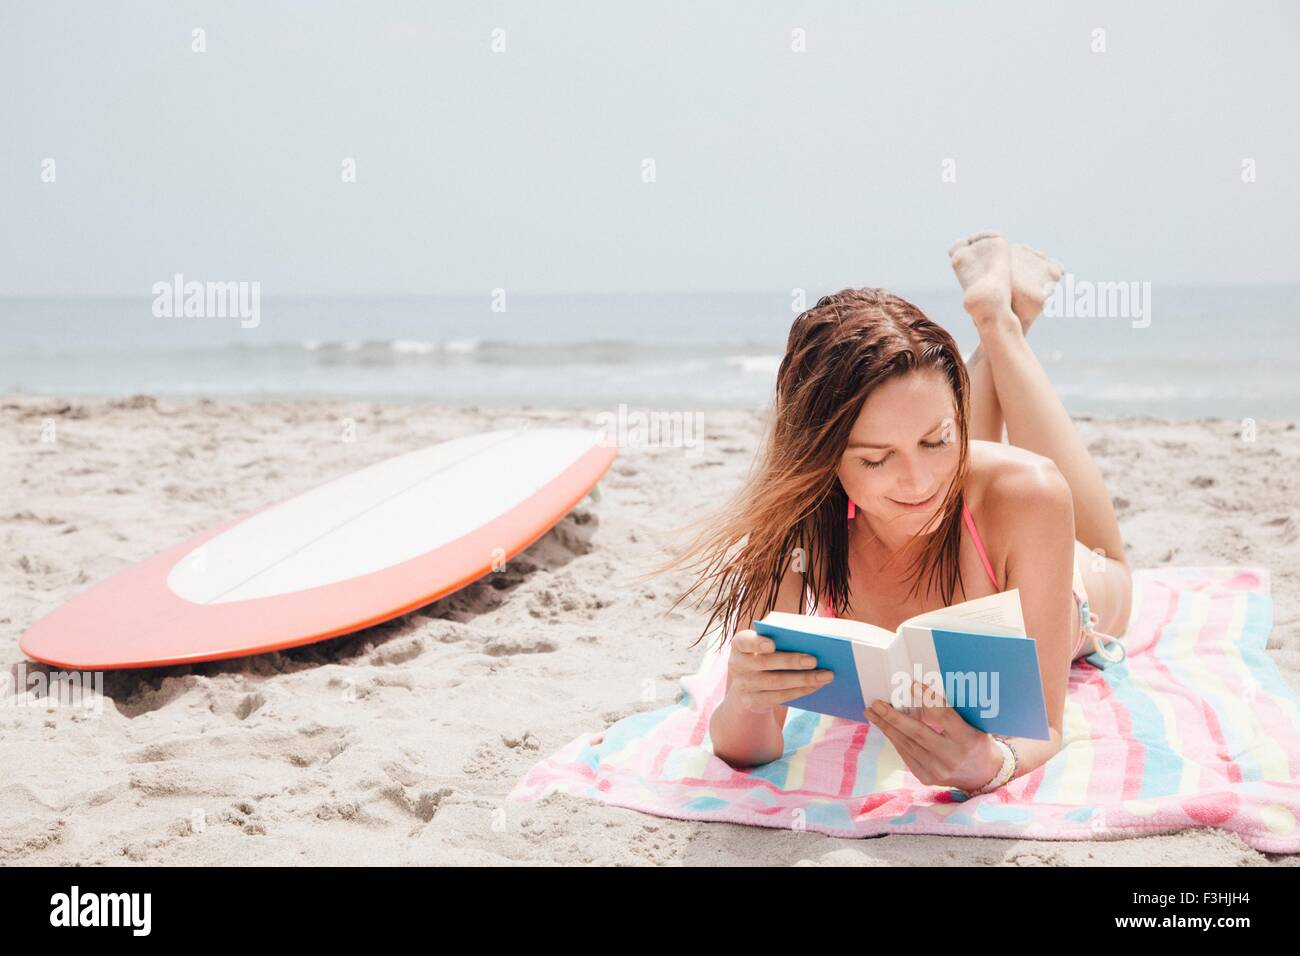 Mid adult woman lying on beach, reading book - Stock Image